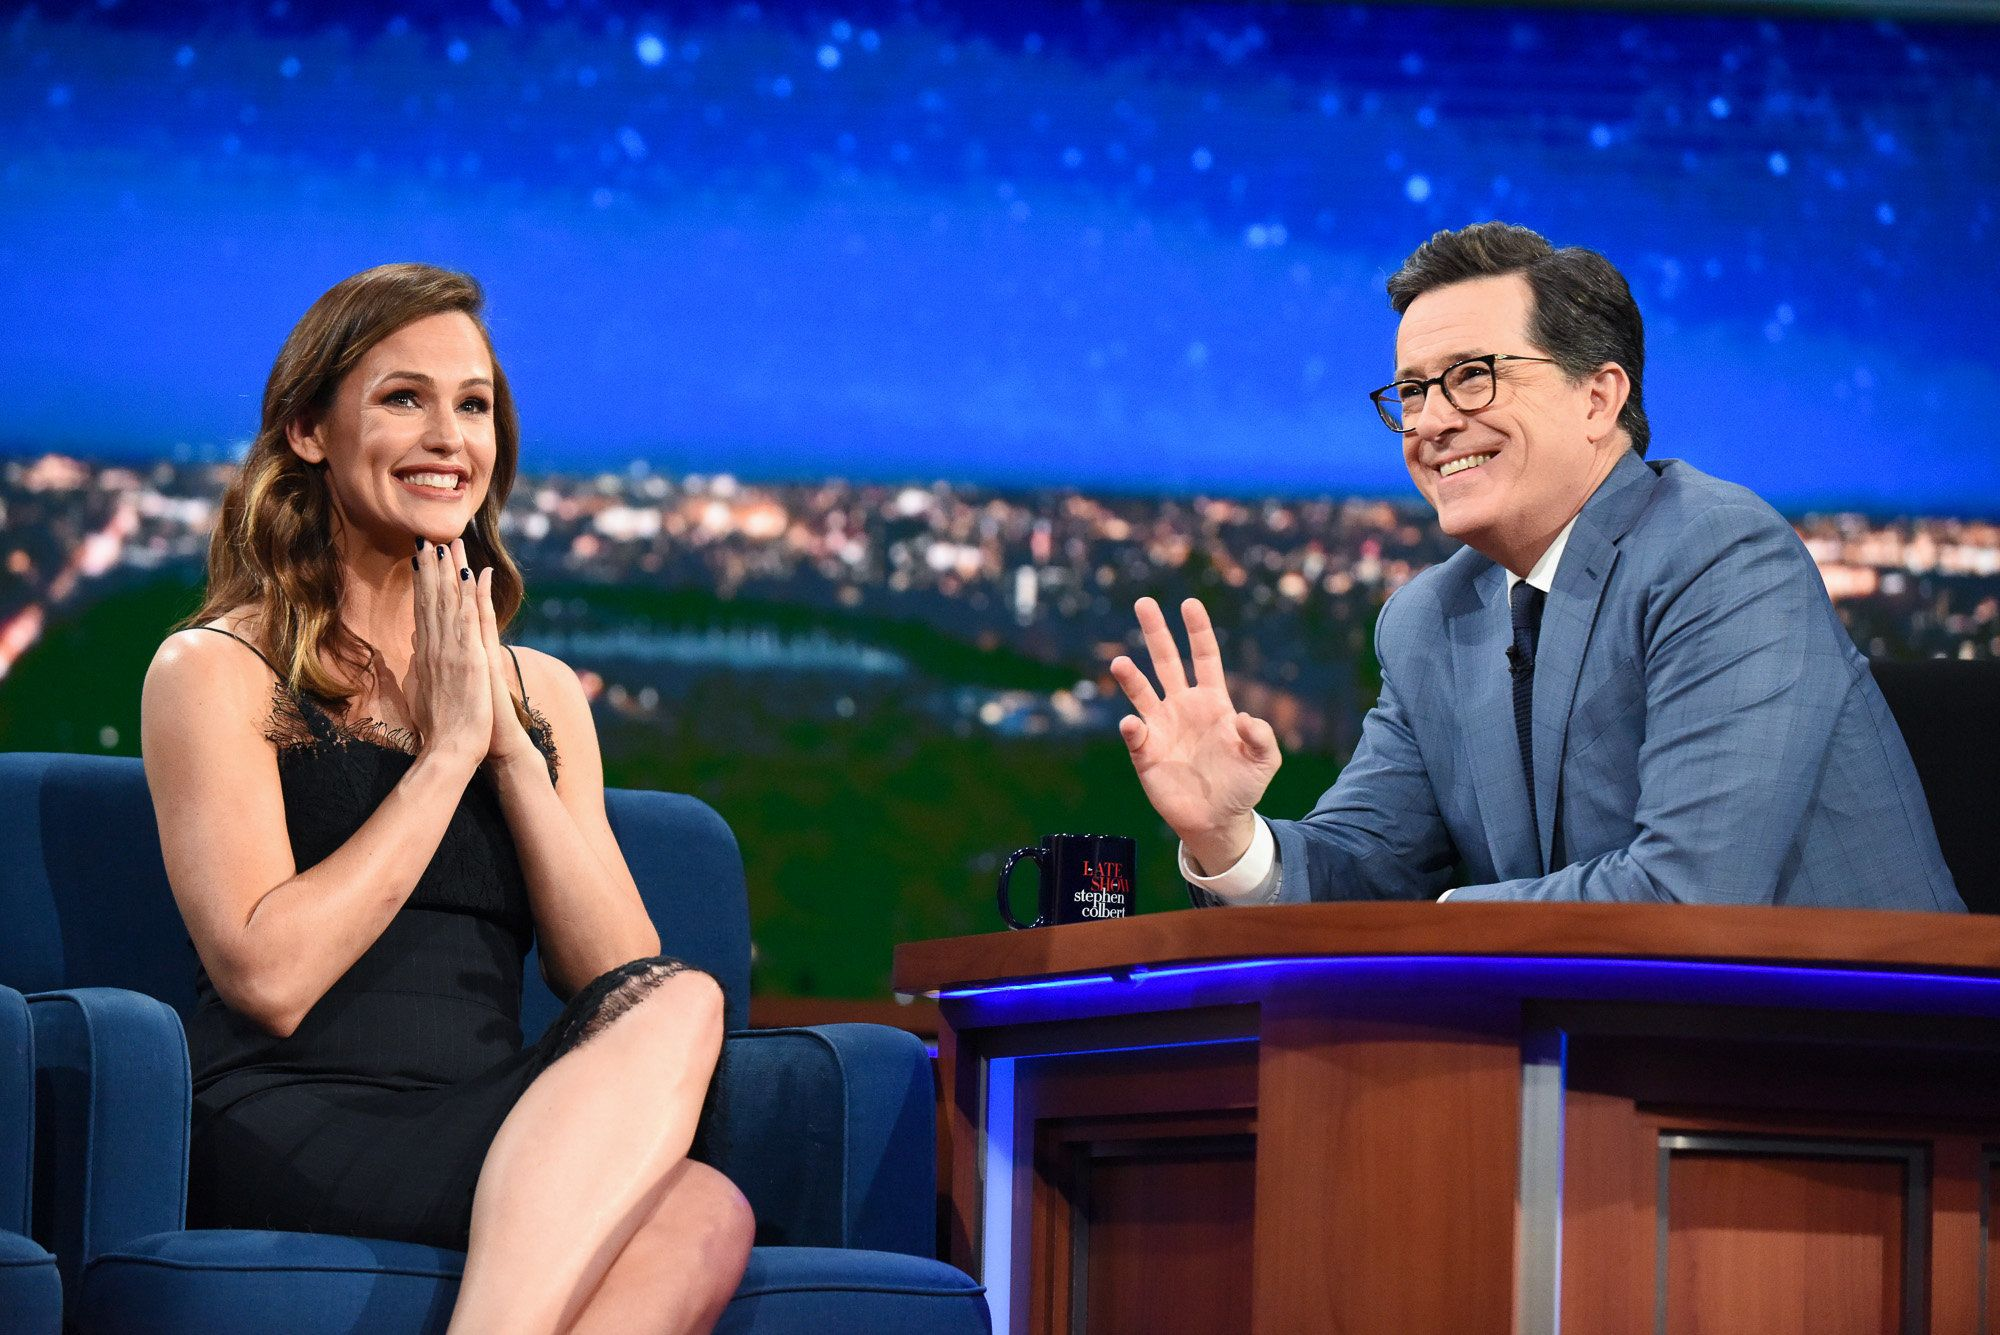 NEW YORK - MAY 19: The Late Show with Stephen Colbert and Guest Jennifer Garner during Friday's May 19, 2017 show in New York. (Photo by Scott Kowalchyk/CBS via Getty Images)